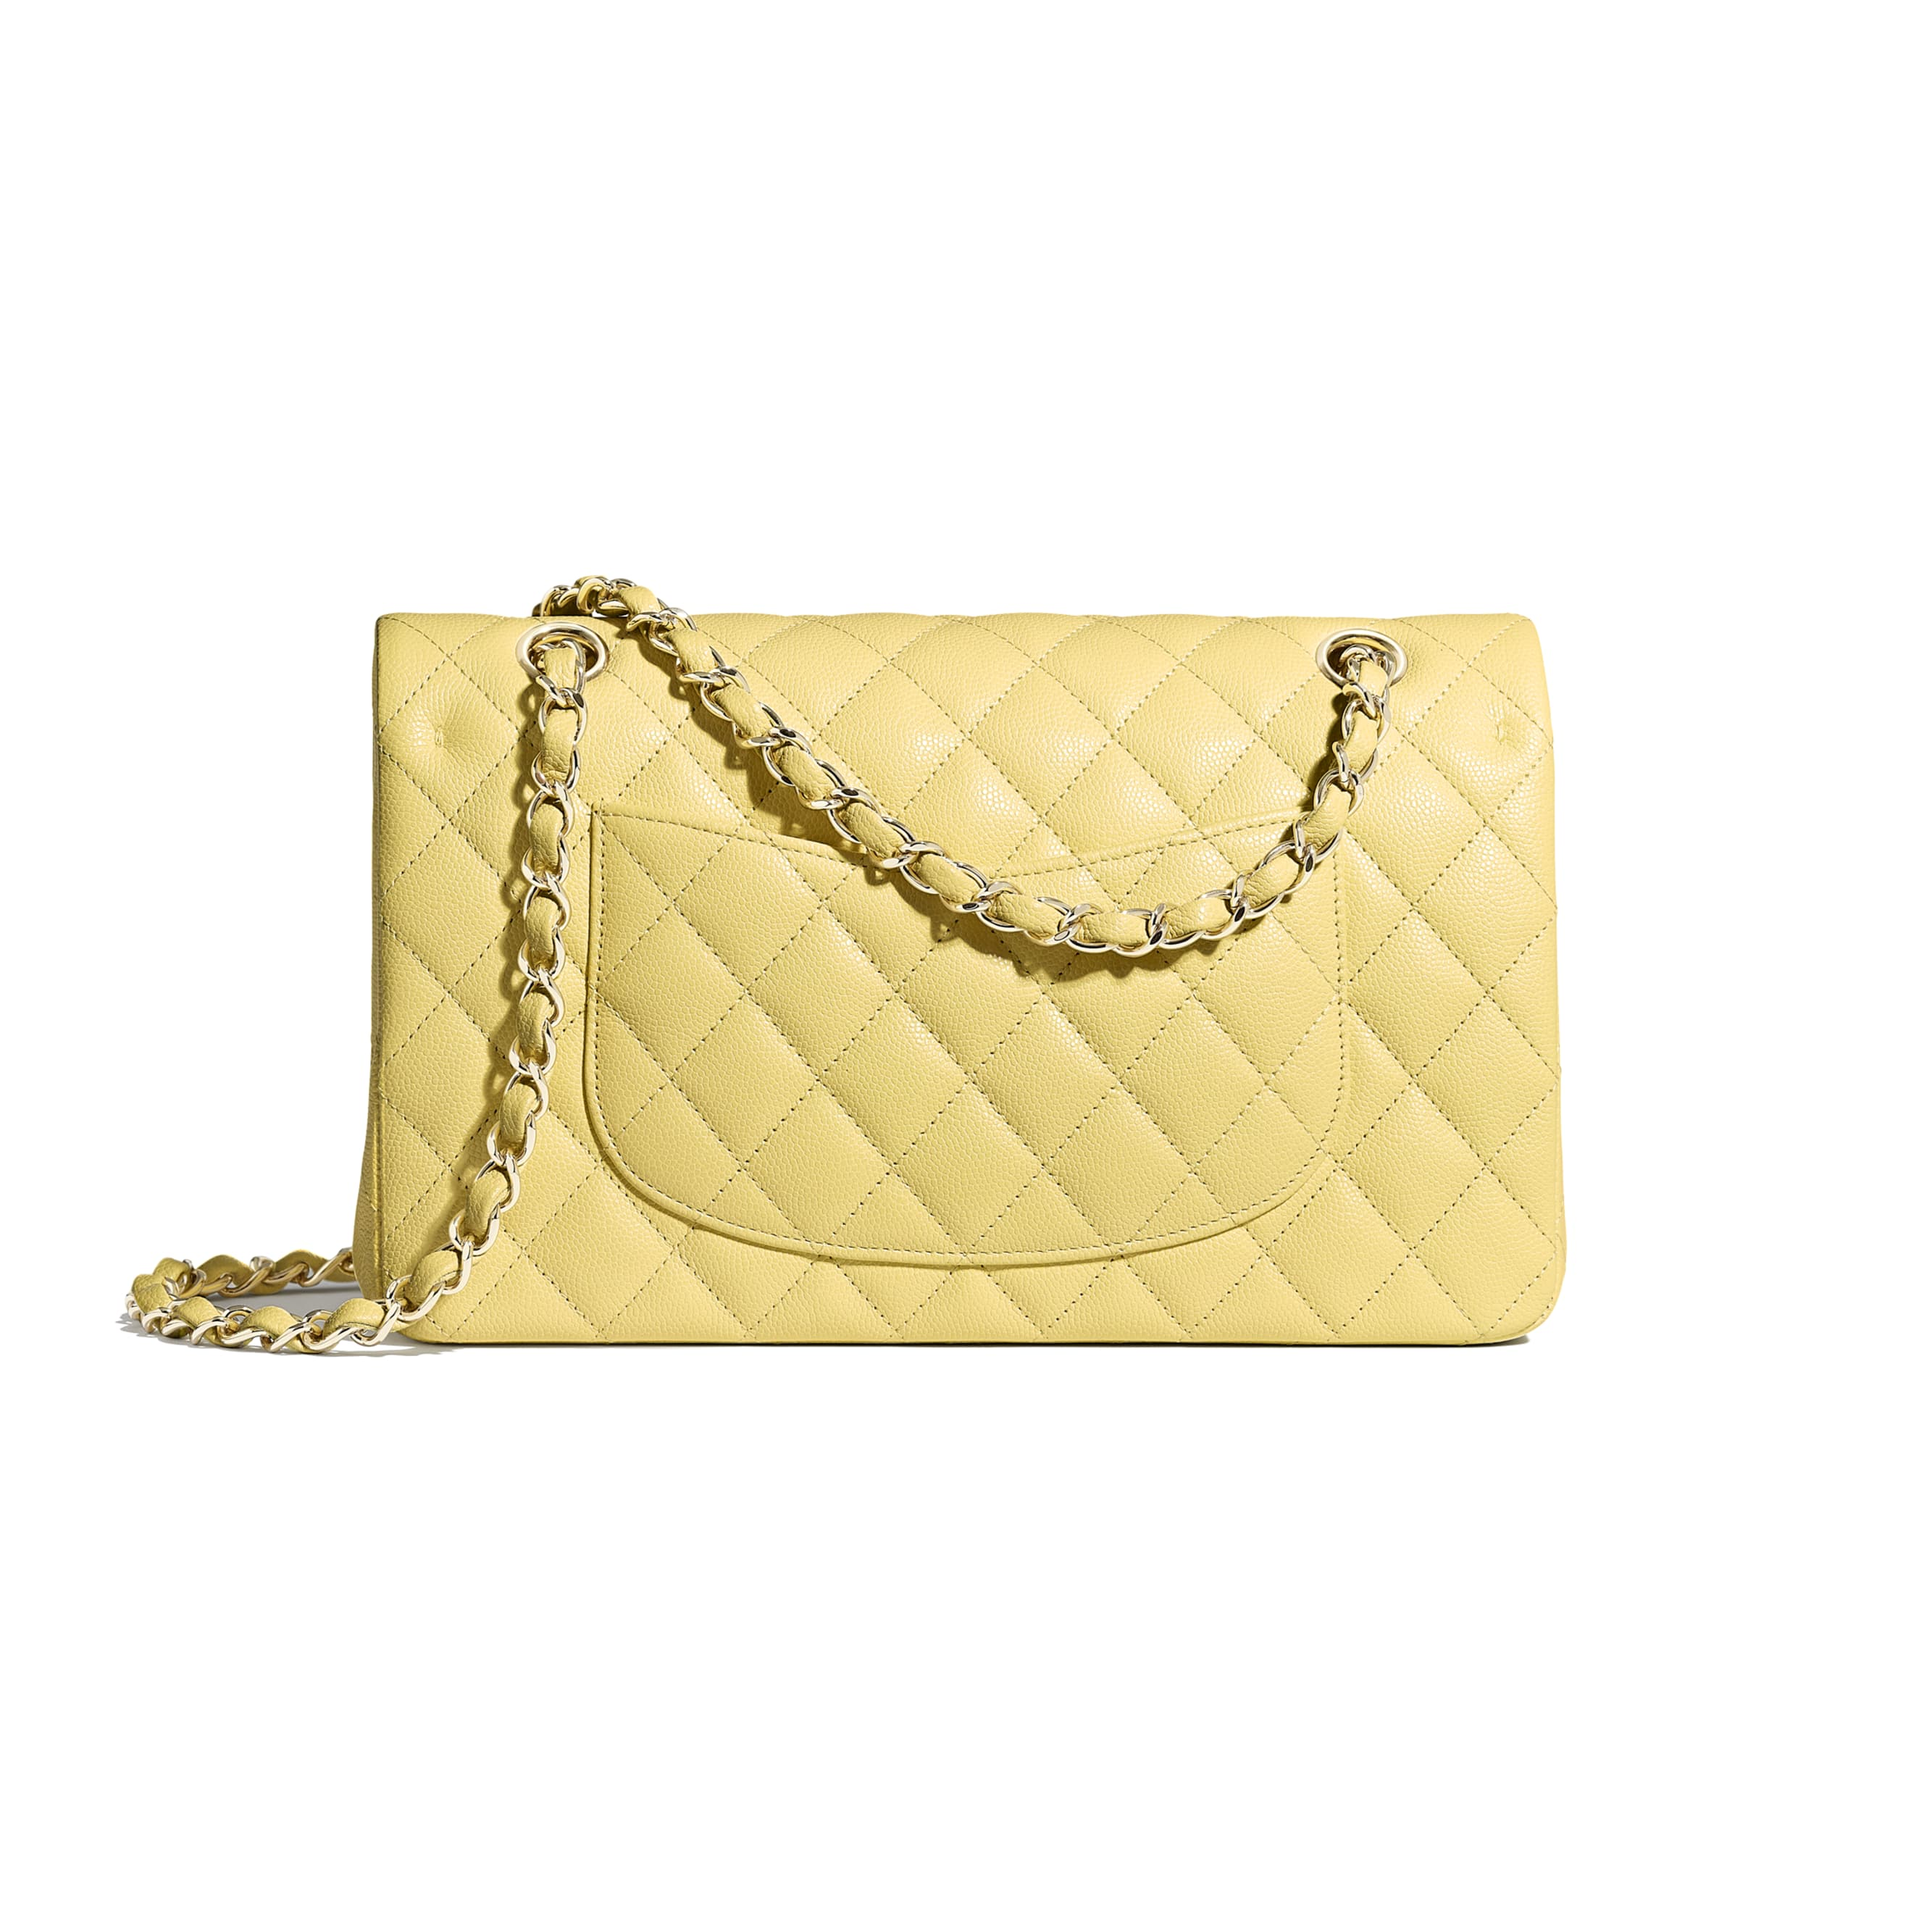 Classic Handbag - Yellow - Grained Calfskin & Gold-Tone Metal - Alternative view - see standard sized version